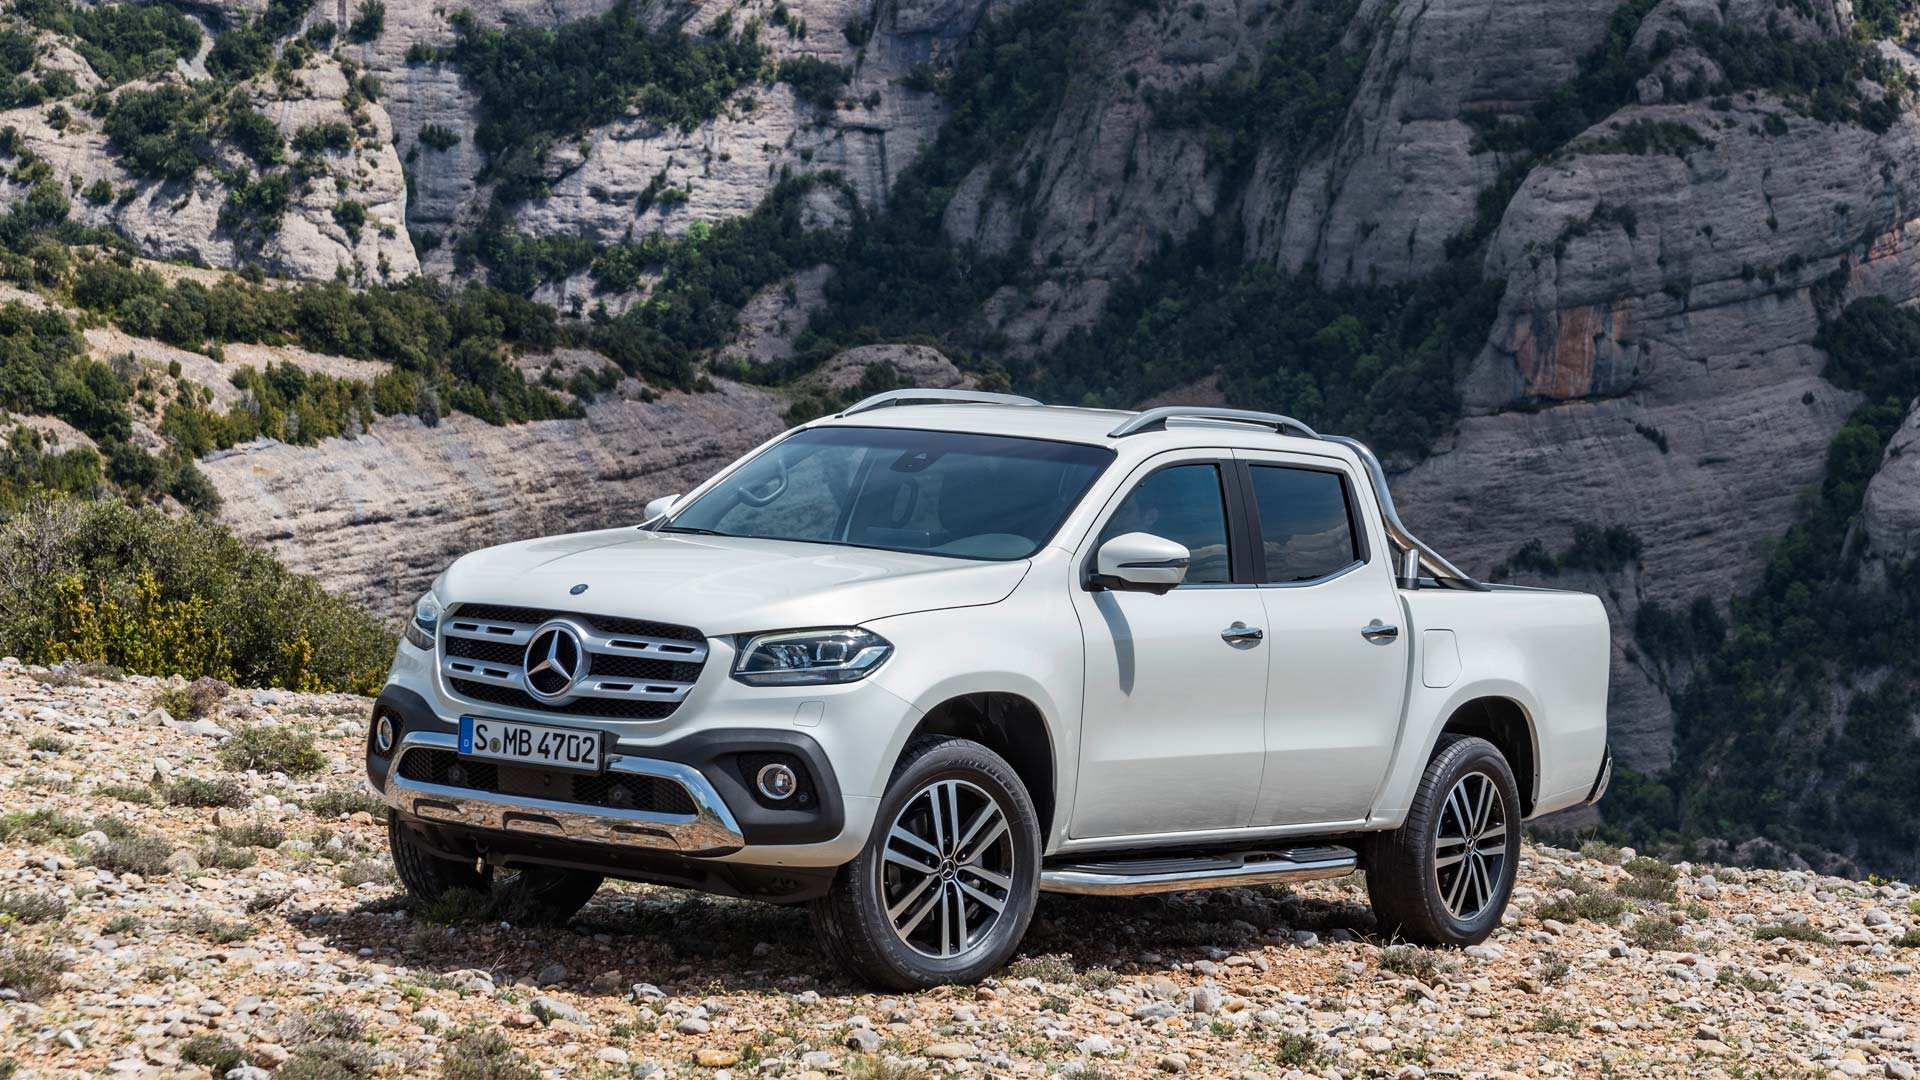 mercedes benz x class debuts in south africa priced at 37 294 autodevot. Black Bedroom Furniture Sets. Home Design Ideas